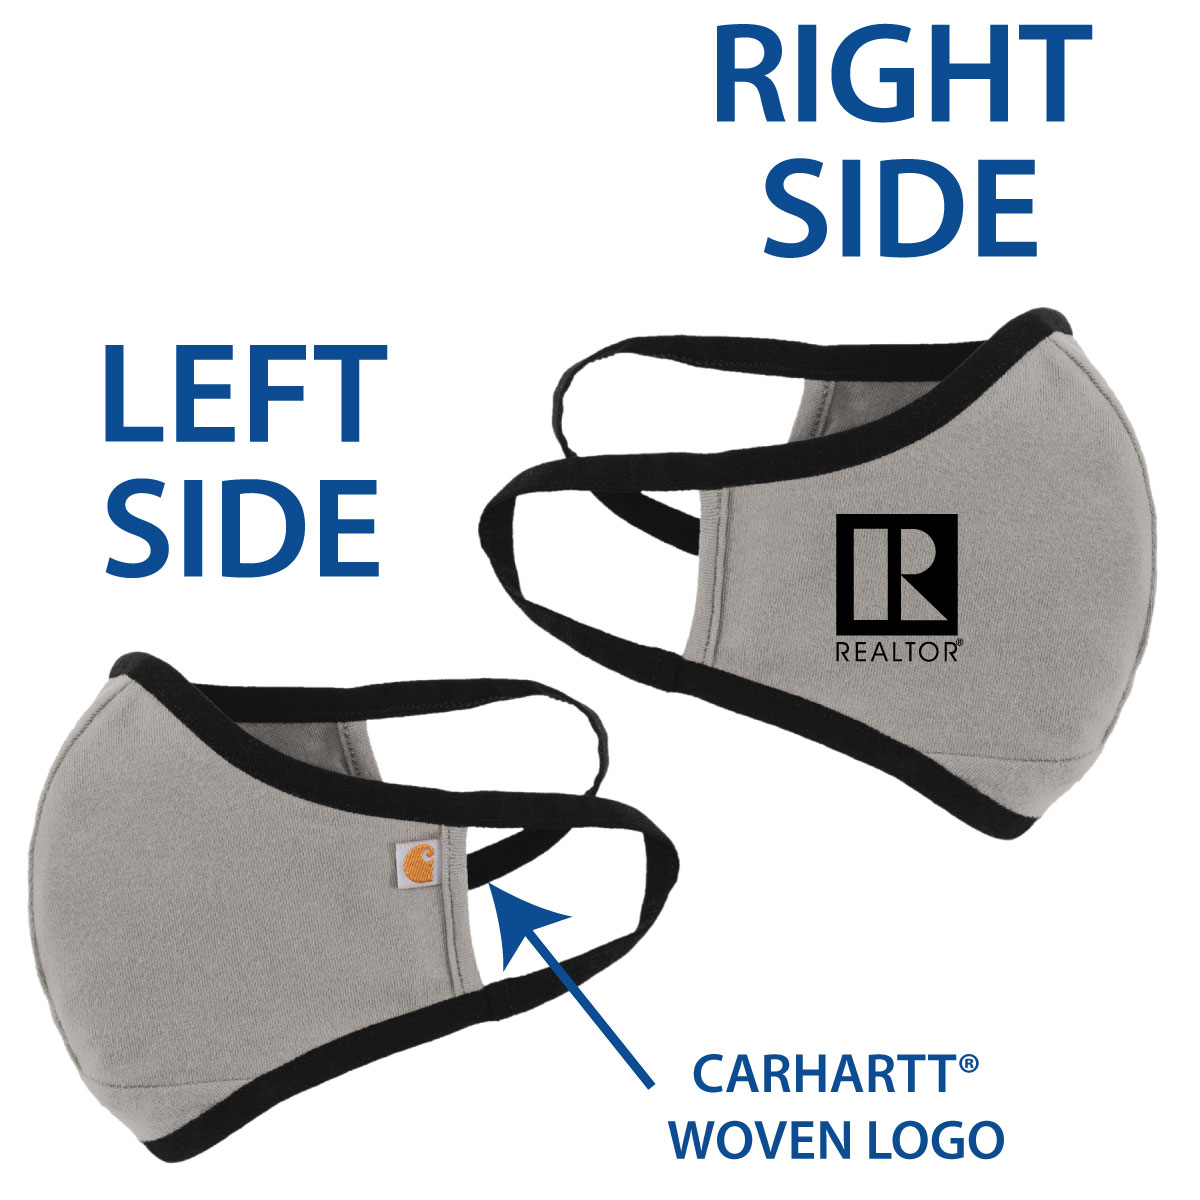 Special Order: Carhartt® 2 Layer Mask (Grey or Brown) - RTS4793-SO